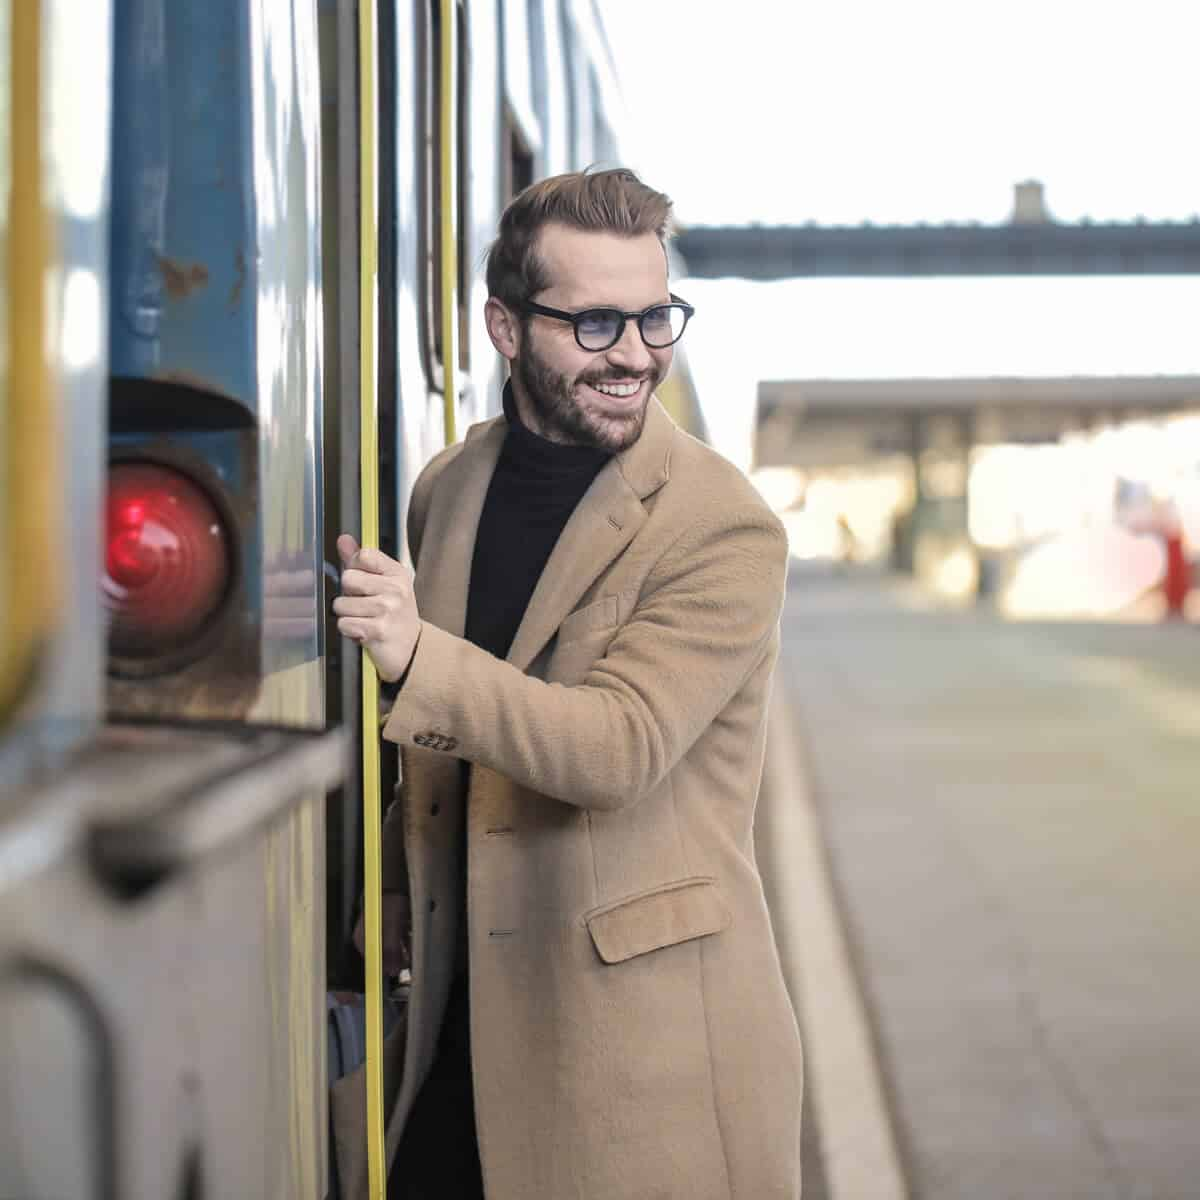 Person stepping onto a train while looking back and smiling.